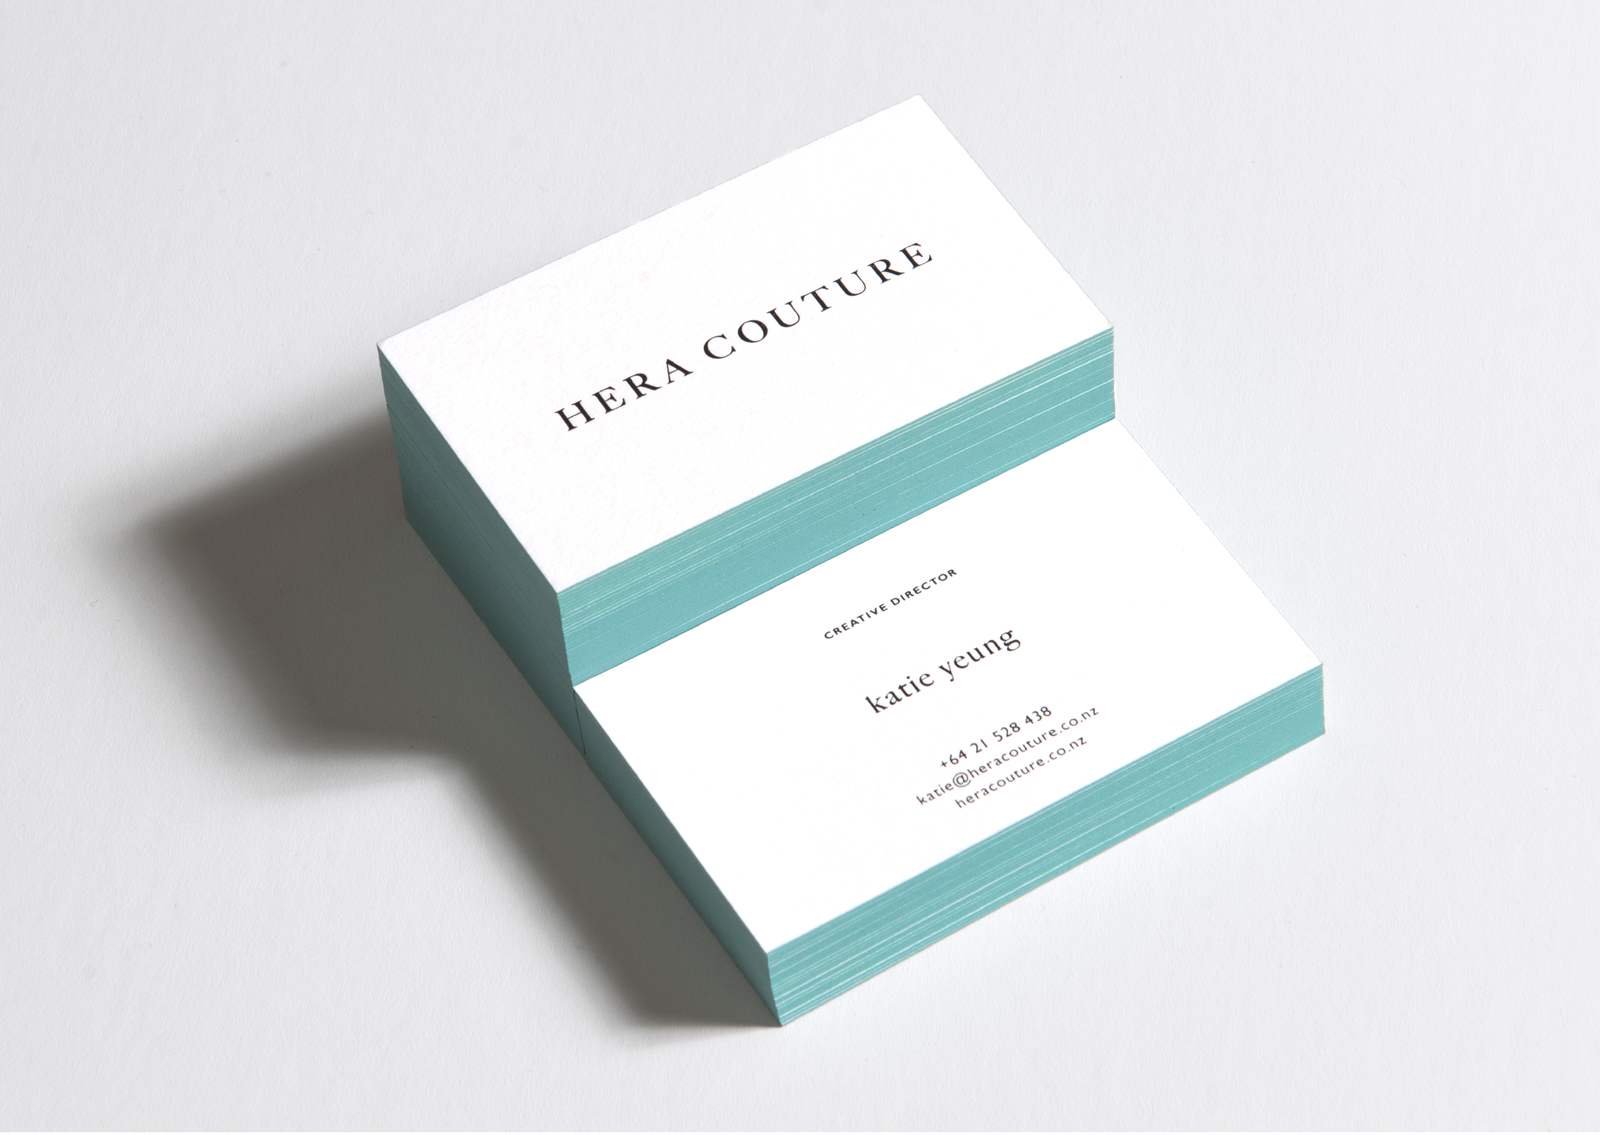 Hera Couture letterpress business cards in stacks highlight aqua painted edges and black foil type